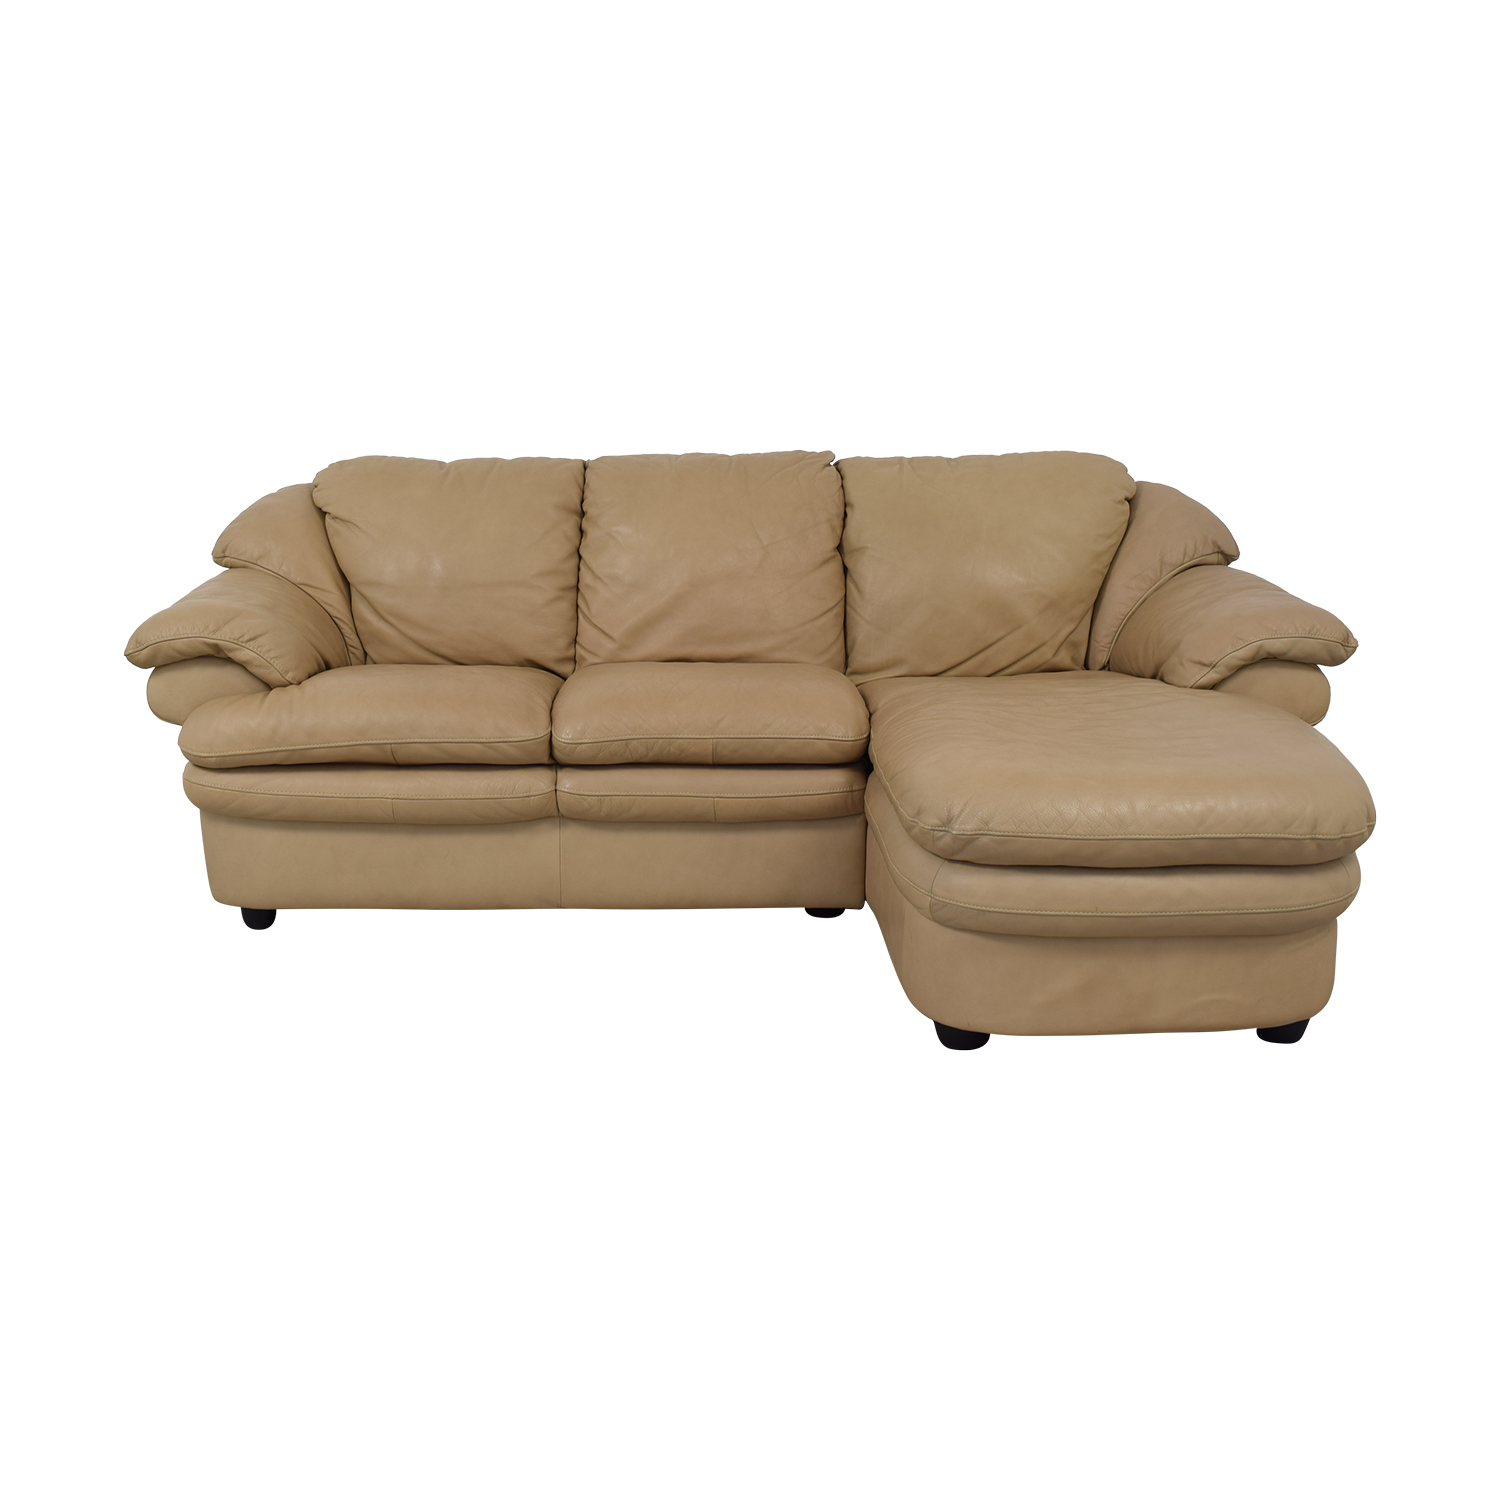 Natuzzi Natuzzi Chaise Sectional nj